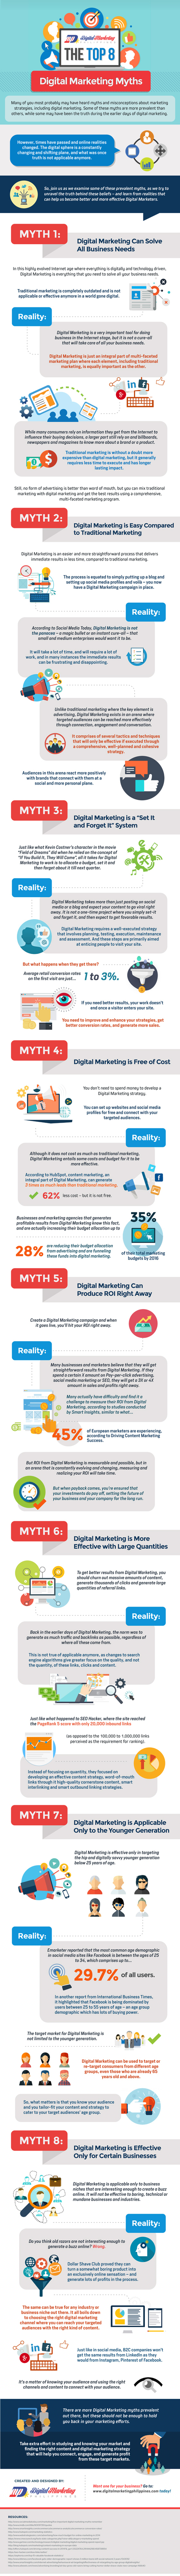 Top 8 Digital Marketing Myths | Integrated Brand Communications | Scoop.it